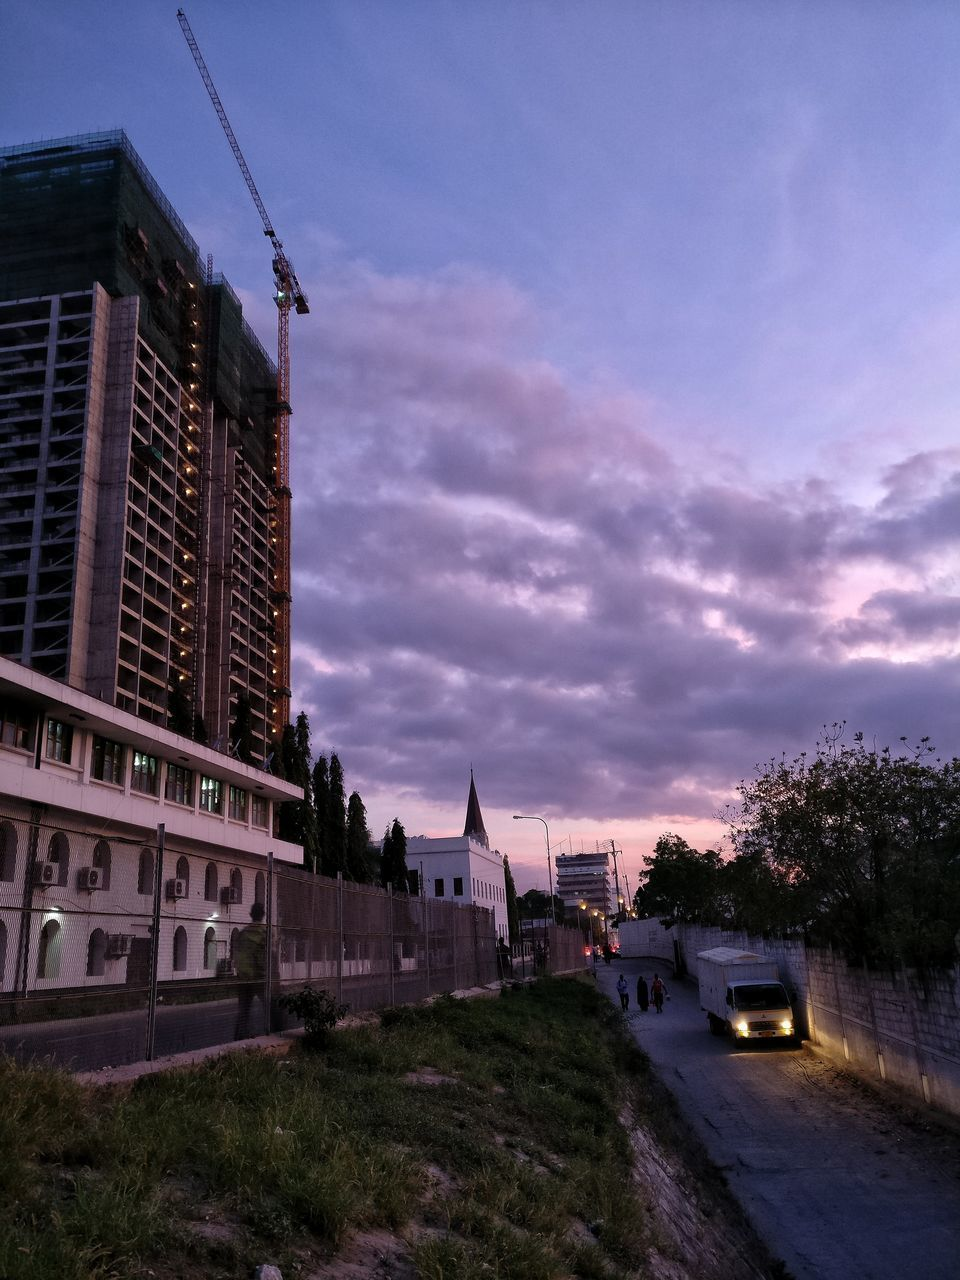 architecture, building exterior, built structure, car, transportation, land vehicle, sky, sunset, city, outdoors, mode of transport, no people, cloud - sky, residential building, tree, road, nature, day